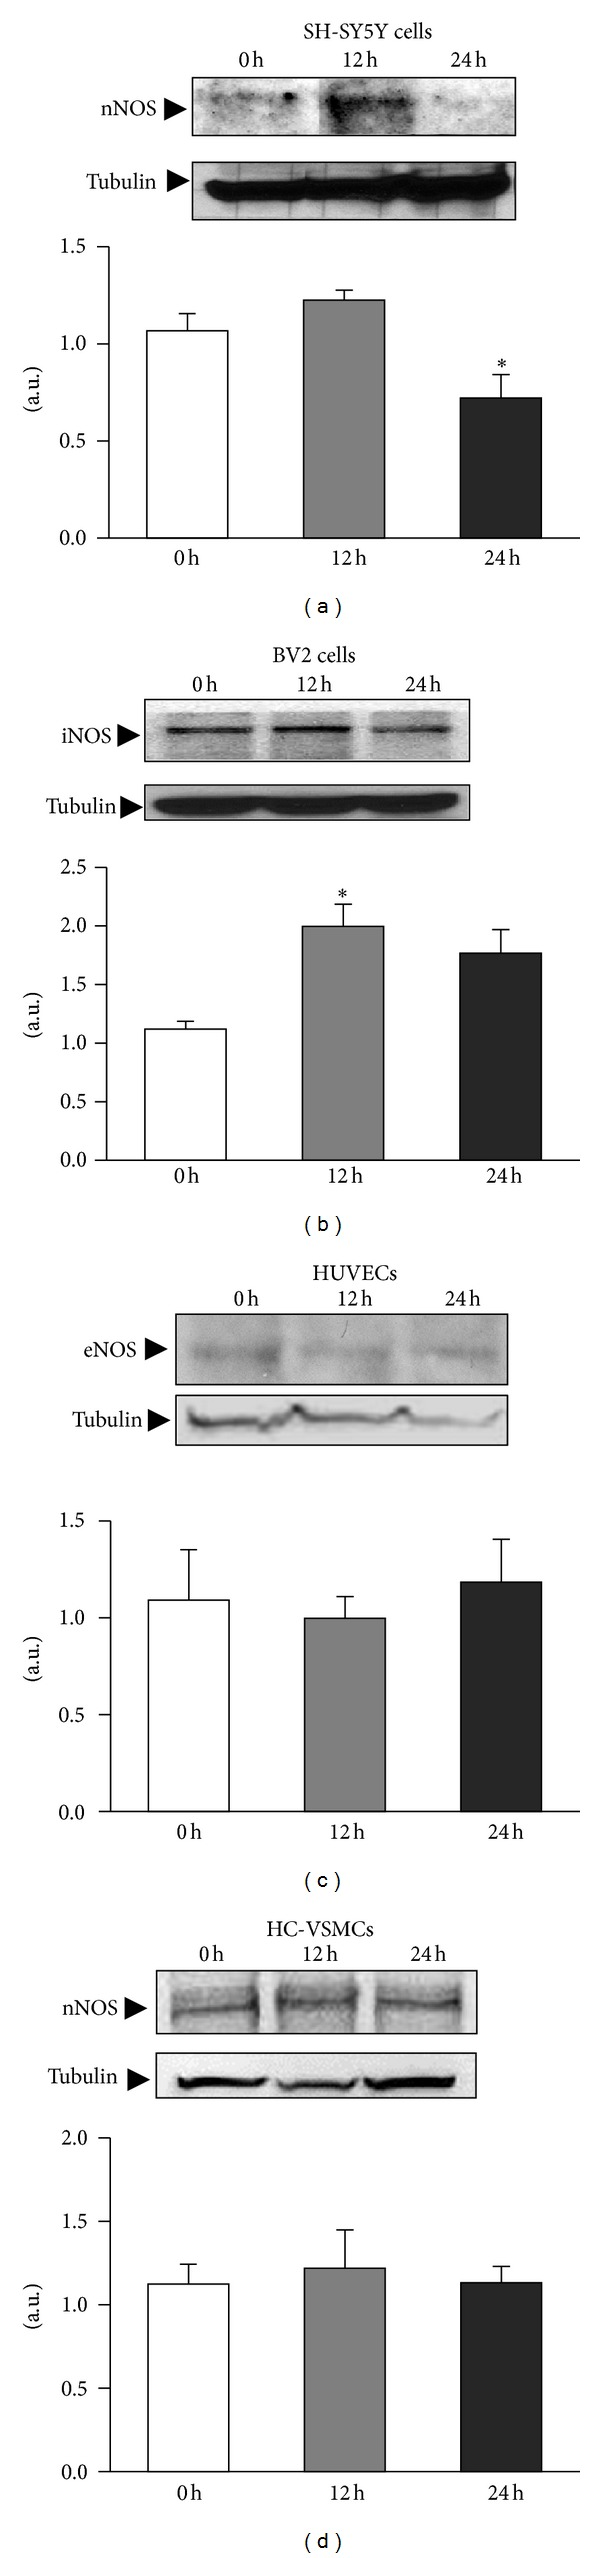 NO is produced in different cell types by the different NOS types. Cells were challenged with ischemia and iNOS, eNOS, and nNOS protein levels were studied immediately at time 0, 12, and 24 h after the ischemic challenge. Densitometric analysis of the bands quantified NOS expression relative to tubulin in all cell types. Data are mean ± SEM values of 6 experiments for microglia and 3 experiments for neurons, endothelial cells, and myocytes. * P